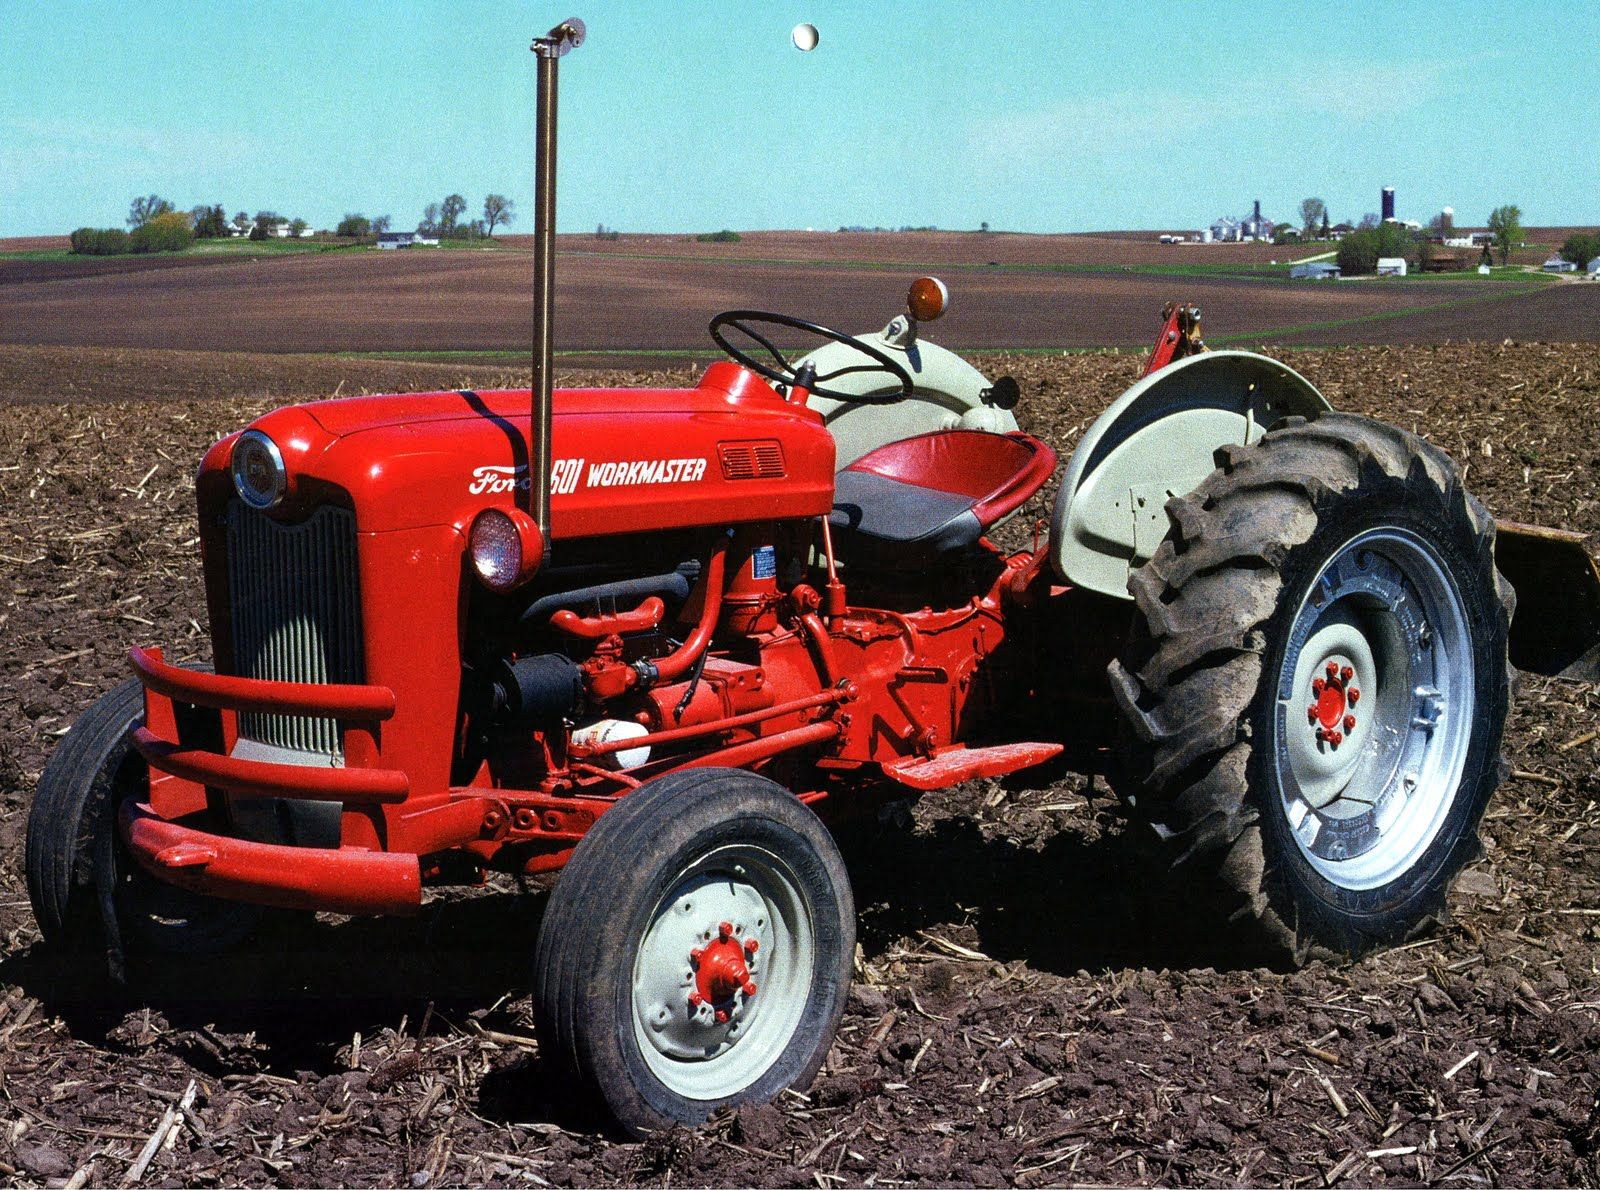 Ford 601 Tractor Parts Online Parts Store Helpline available at Alma Tractor u0026 Equipment Inc. If you have questions about your parts feel free to call our ... & Tractor | ... Alma Tractor u0026 Equipment Online Parts Store for Ford ... markmcfarlin.com